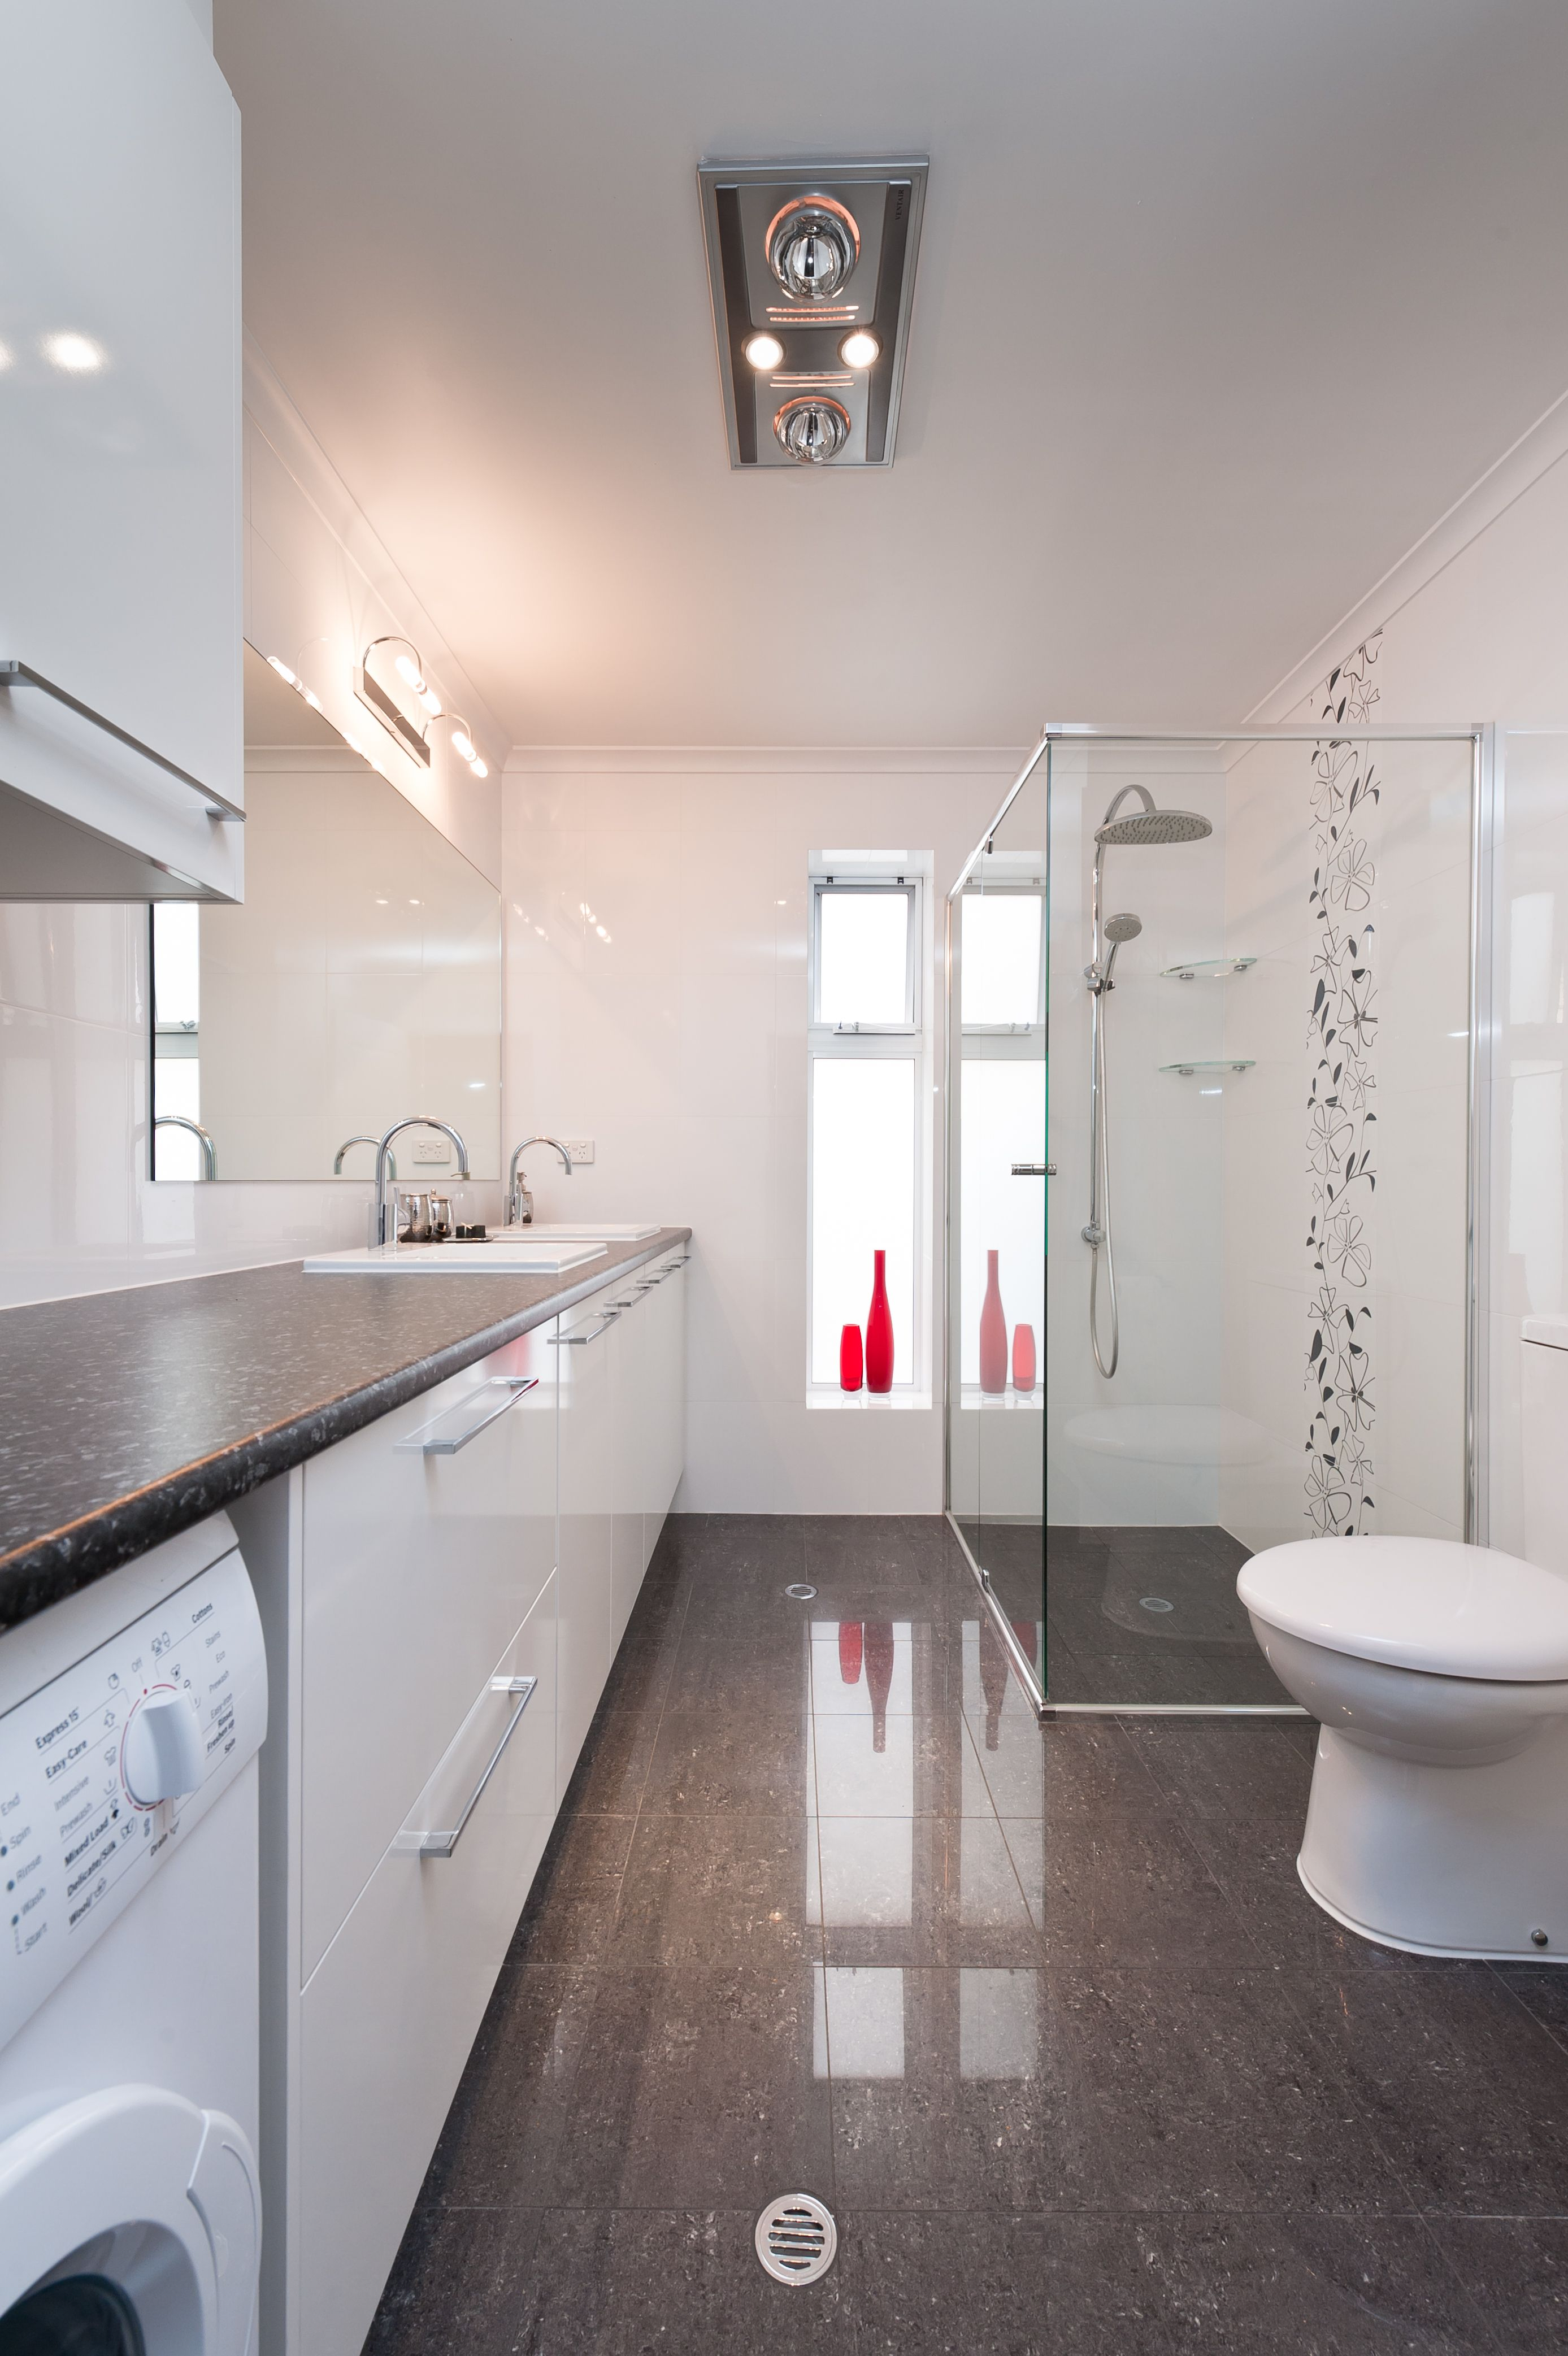 Laundry Room Ideas Small With Sink Layout